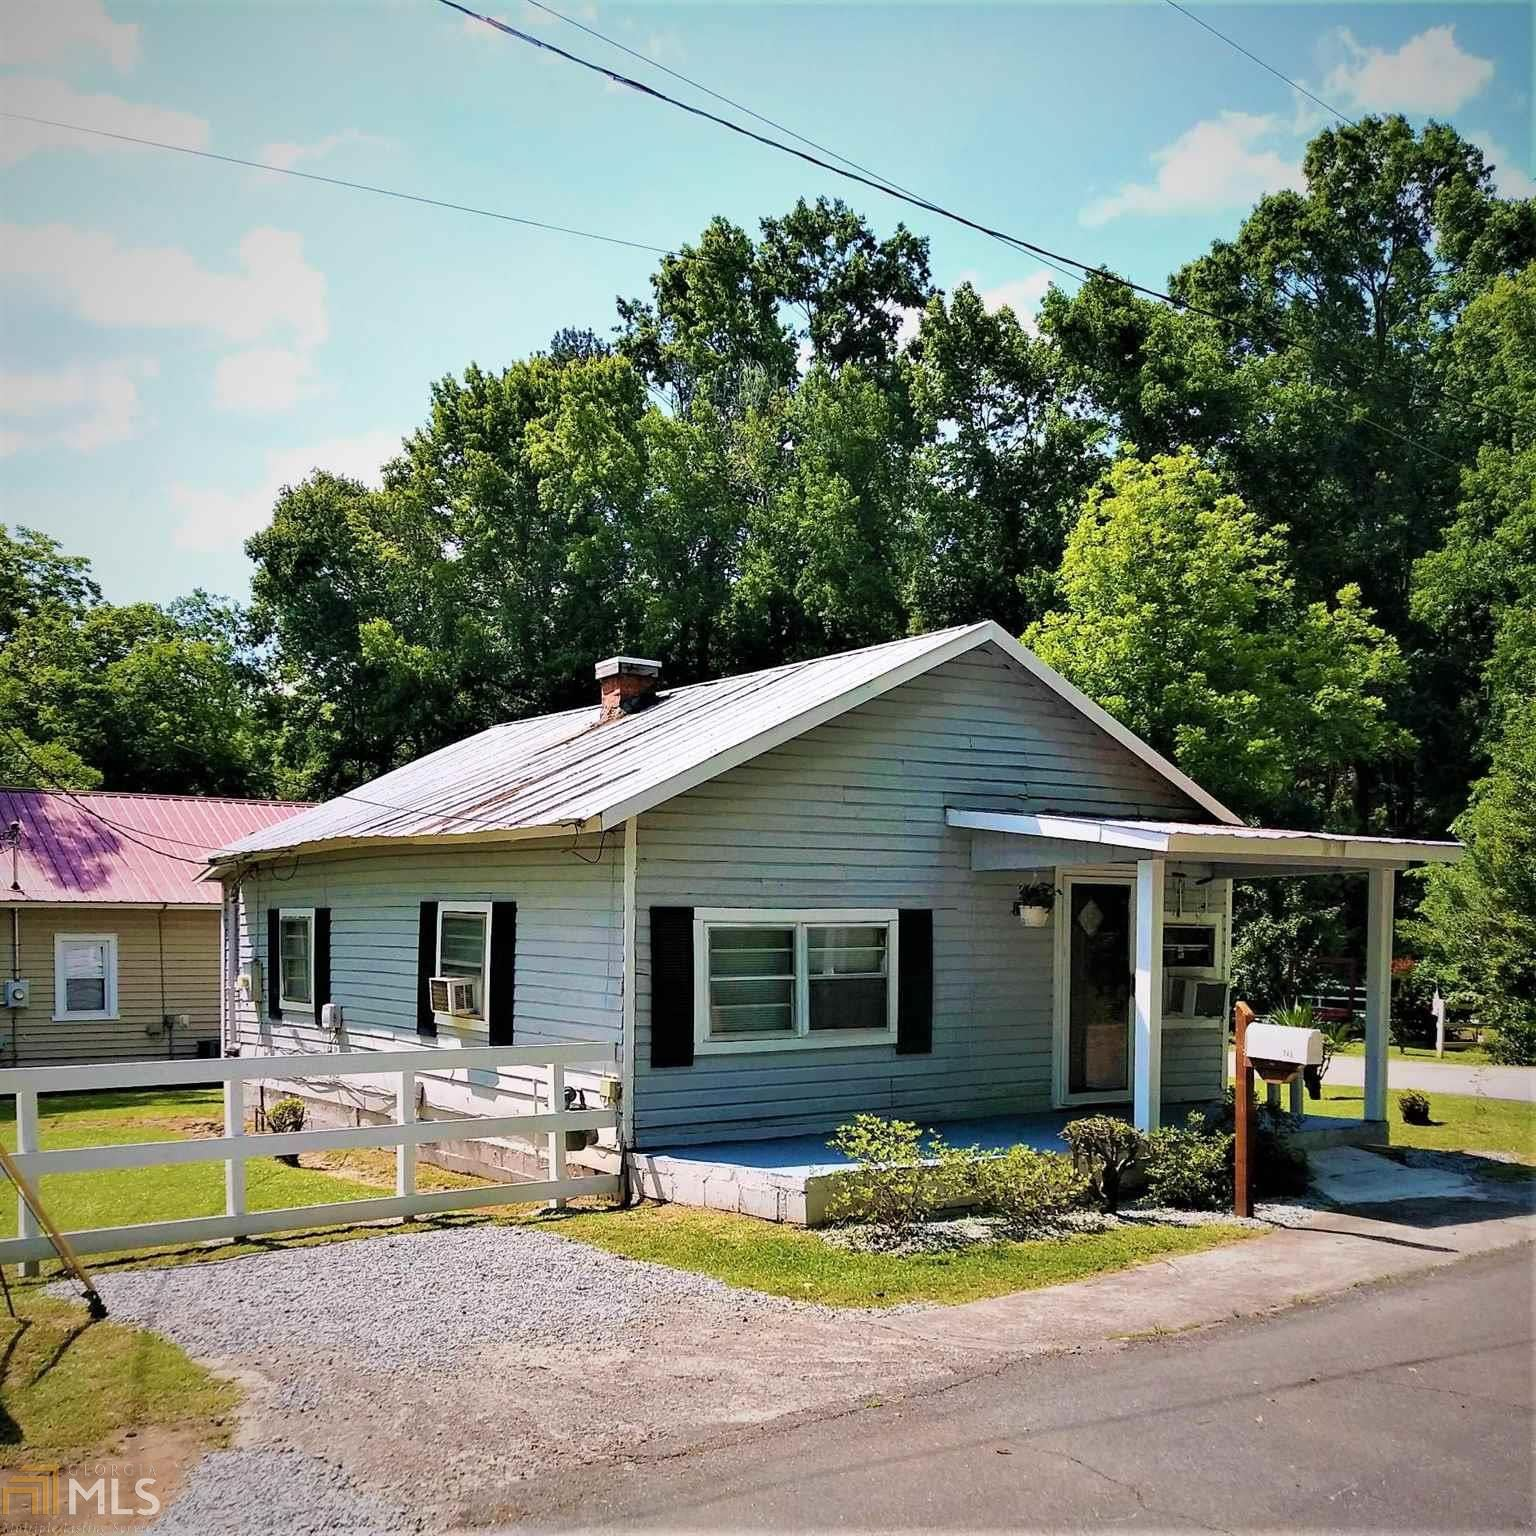 149 N Jefferson St, Gray, GA 31032 - MLS#: 8952890